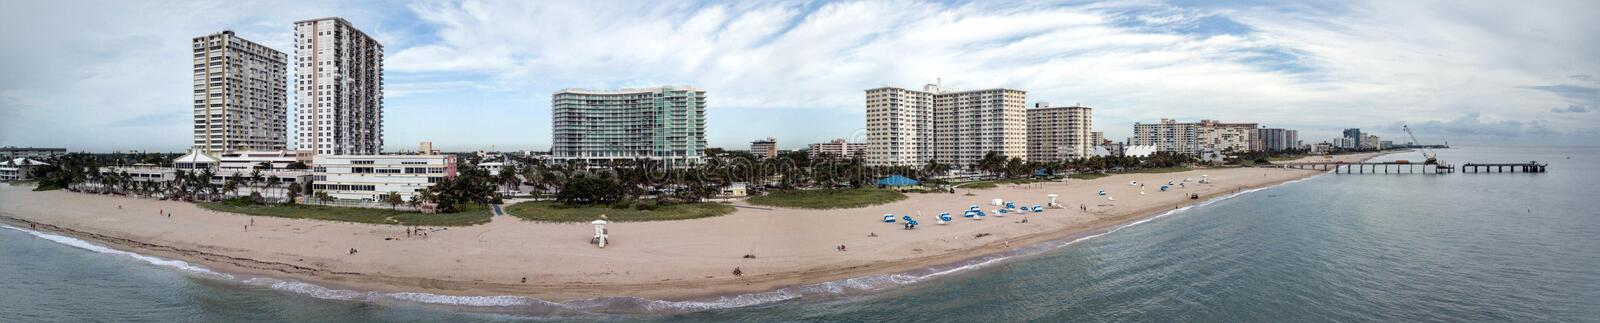 Pompano Strand Florida Pier Panorama Construction royalty-vrije stock fotografie